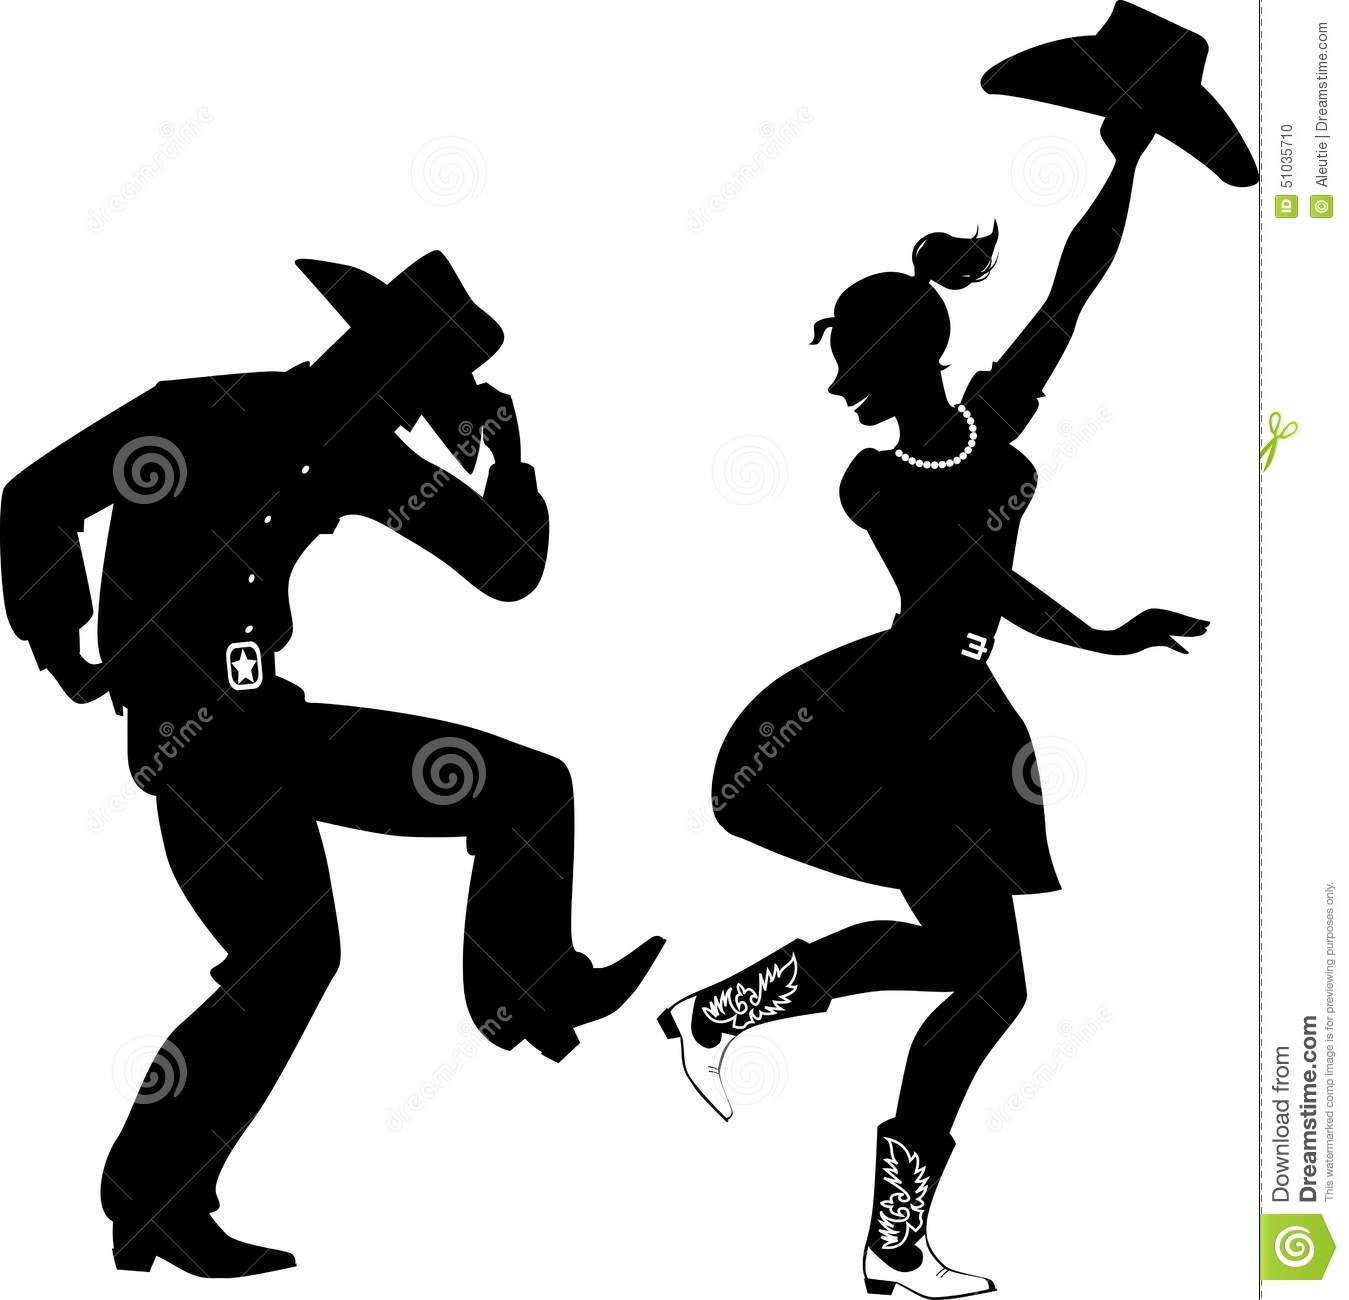 Silhouette Country Western Dancers Black Couple Dressed Traditional Style Clothes Cowboy Boots Stetson Hats Dancing No on Western Two Step Dance